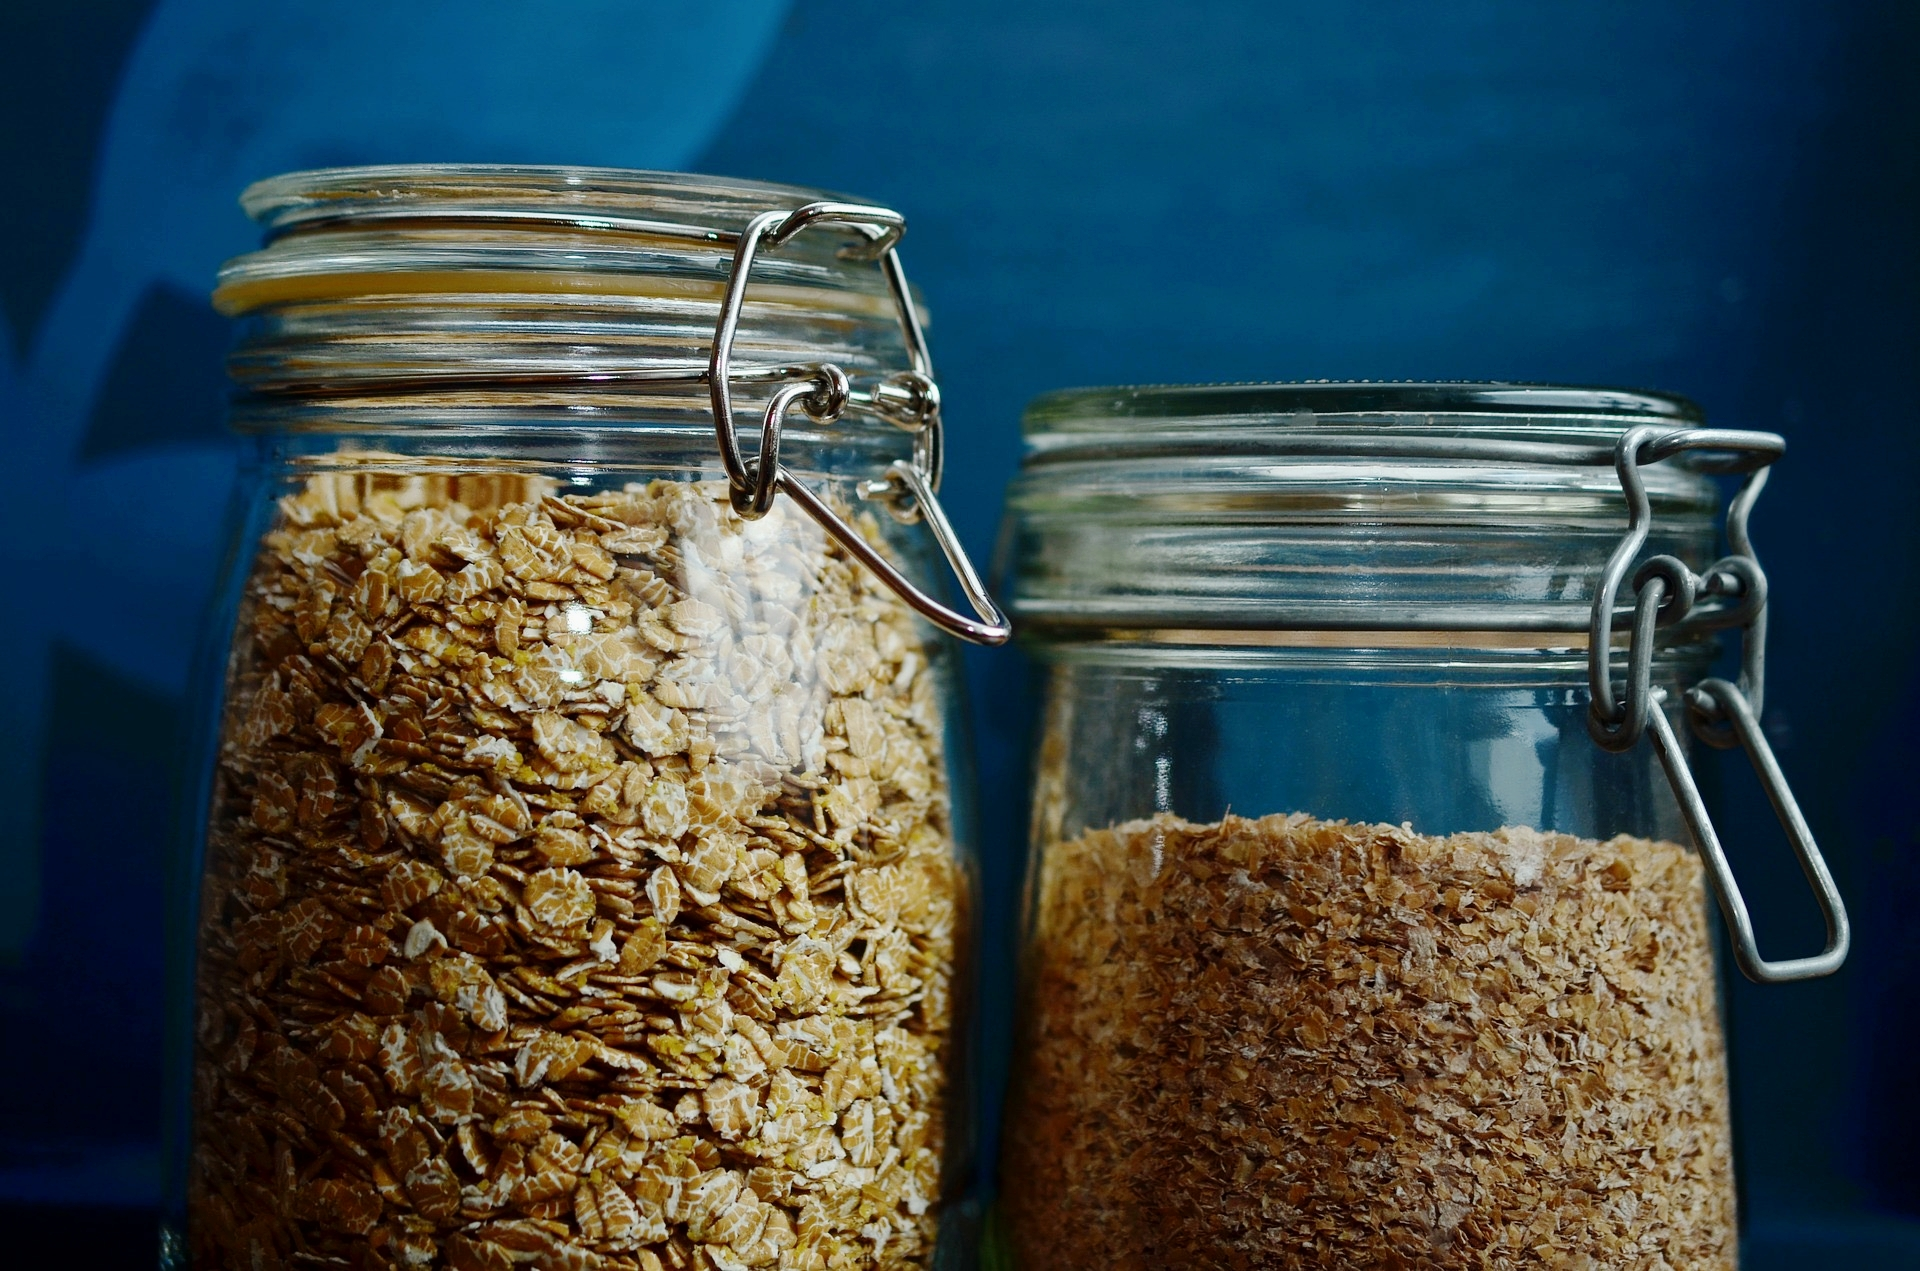 - Yield: 2 servingsTime: 15 minutes1 cup Old Fashioned Oats1 ½ cup Water1 cup cut up pear no skin small dice3 whole cloves½ cup Almond Milk1 Tsp. Almond ButterHoneyCook the Oatmeal and the water. Let it simmer for about 5-7 minutes. Then add the other ingredients and let the pear soften another 3 minutes. You may need to add a bit more water. Turn off the heat under the oats. Garnish with a swish of honey.